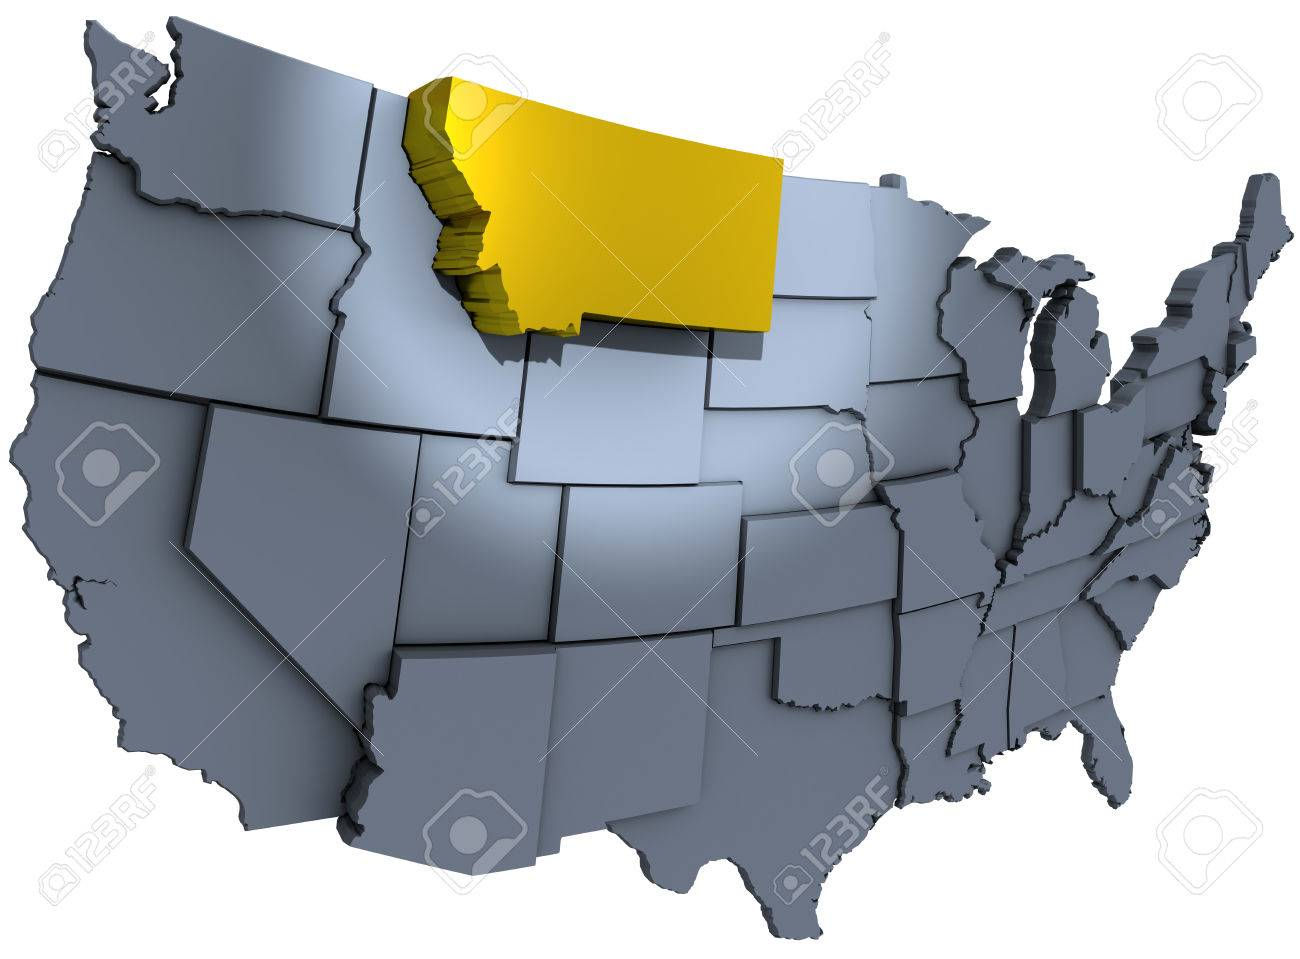 Spotlight On Gold Montana Treasure State In Map Of United States - Montana on us map